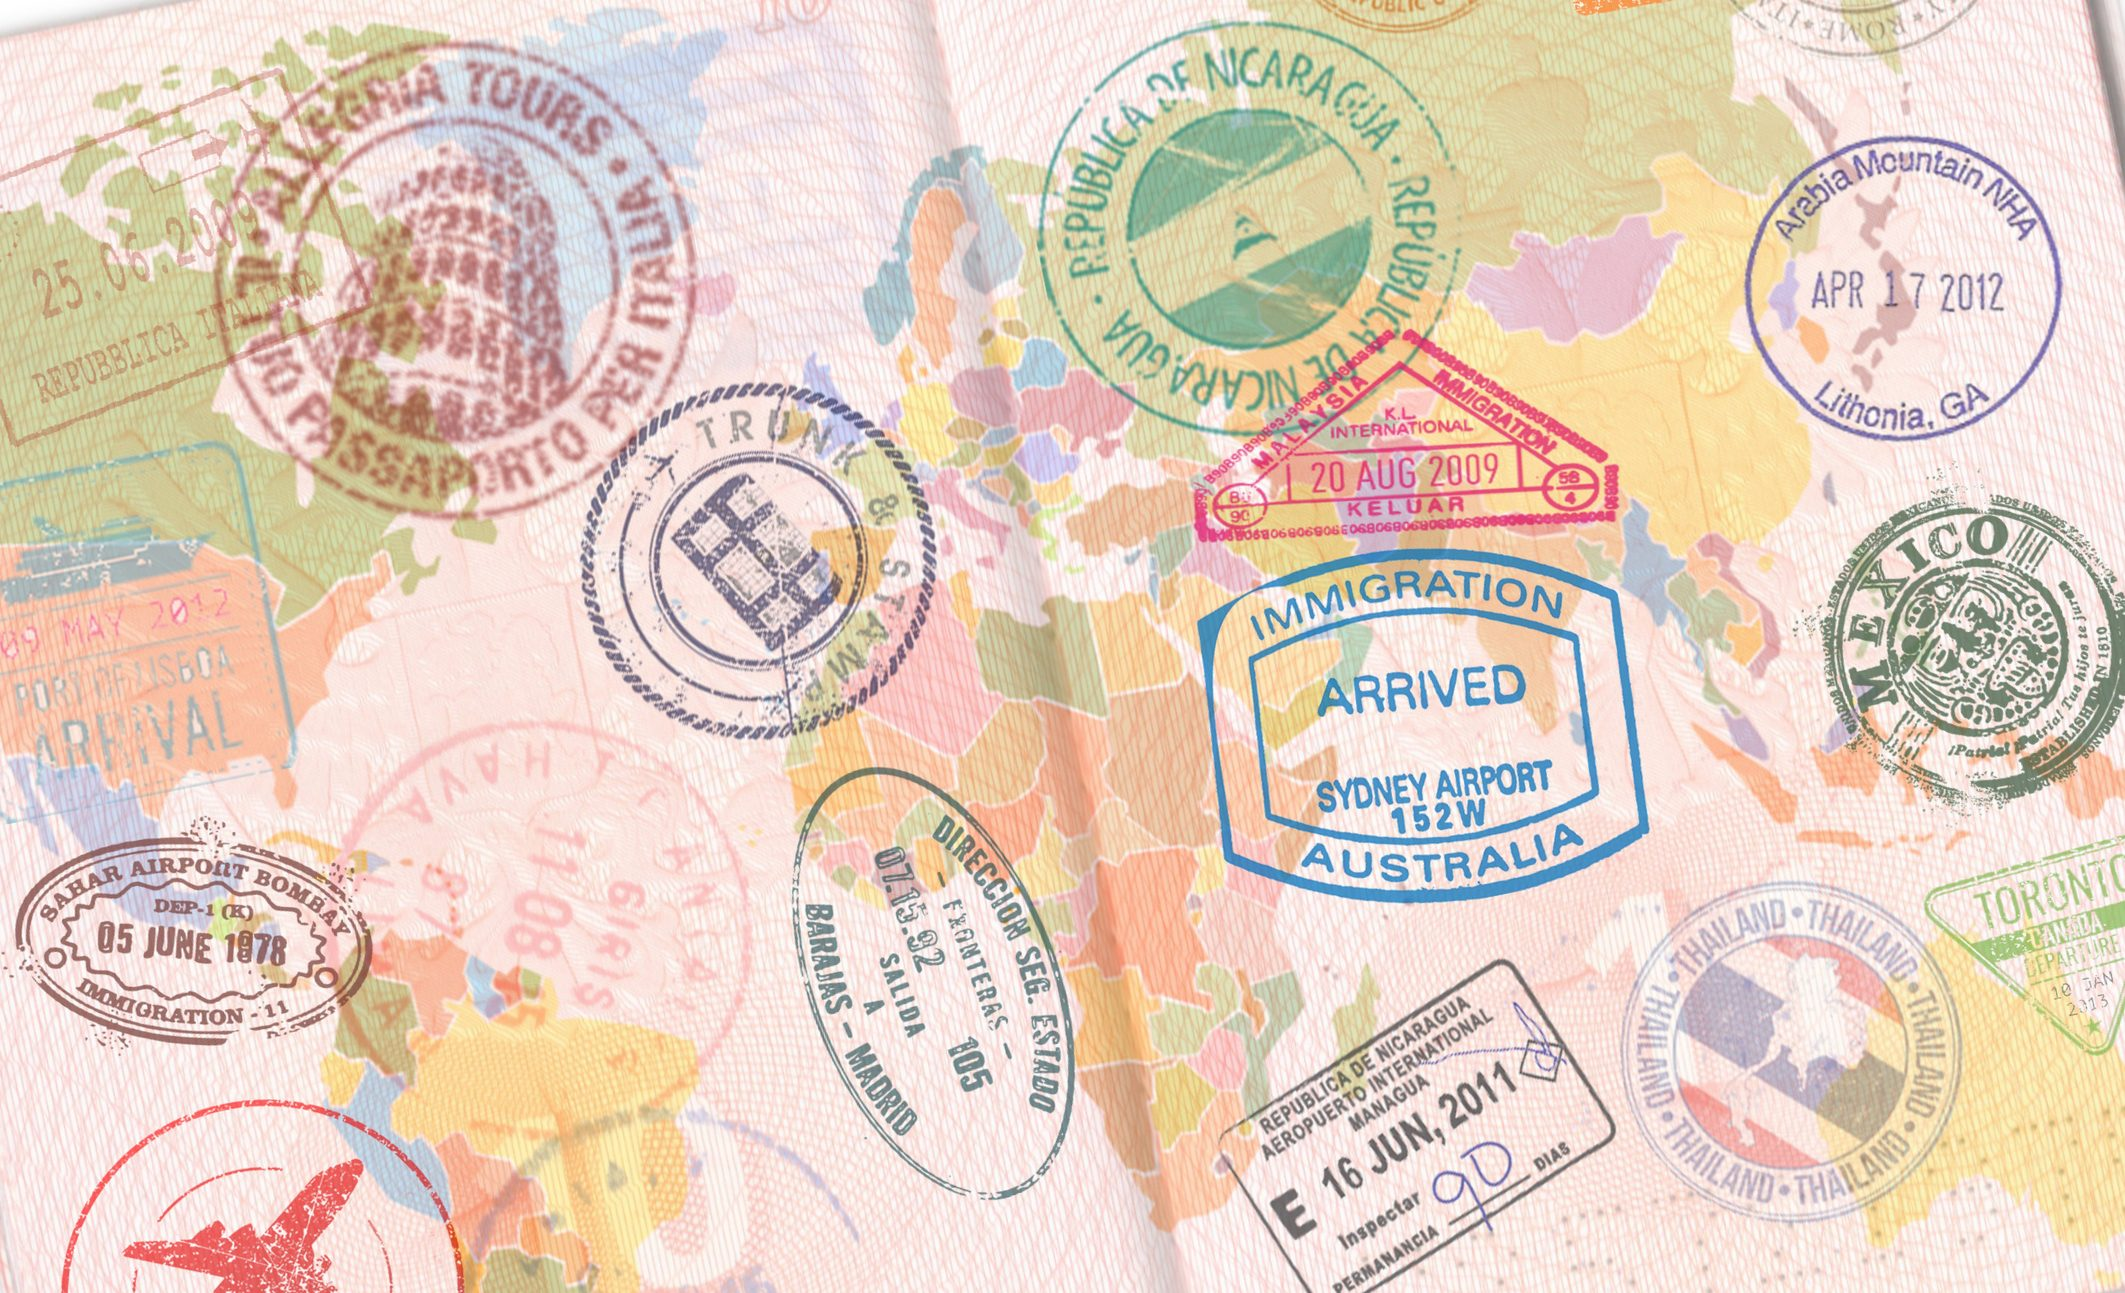 https://acass.com/wp-content/uploads/2019/07/ACASS-passport-e1563391074348.jpg